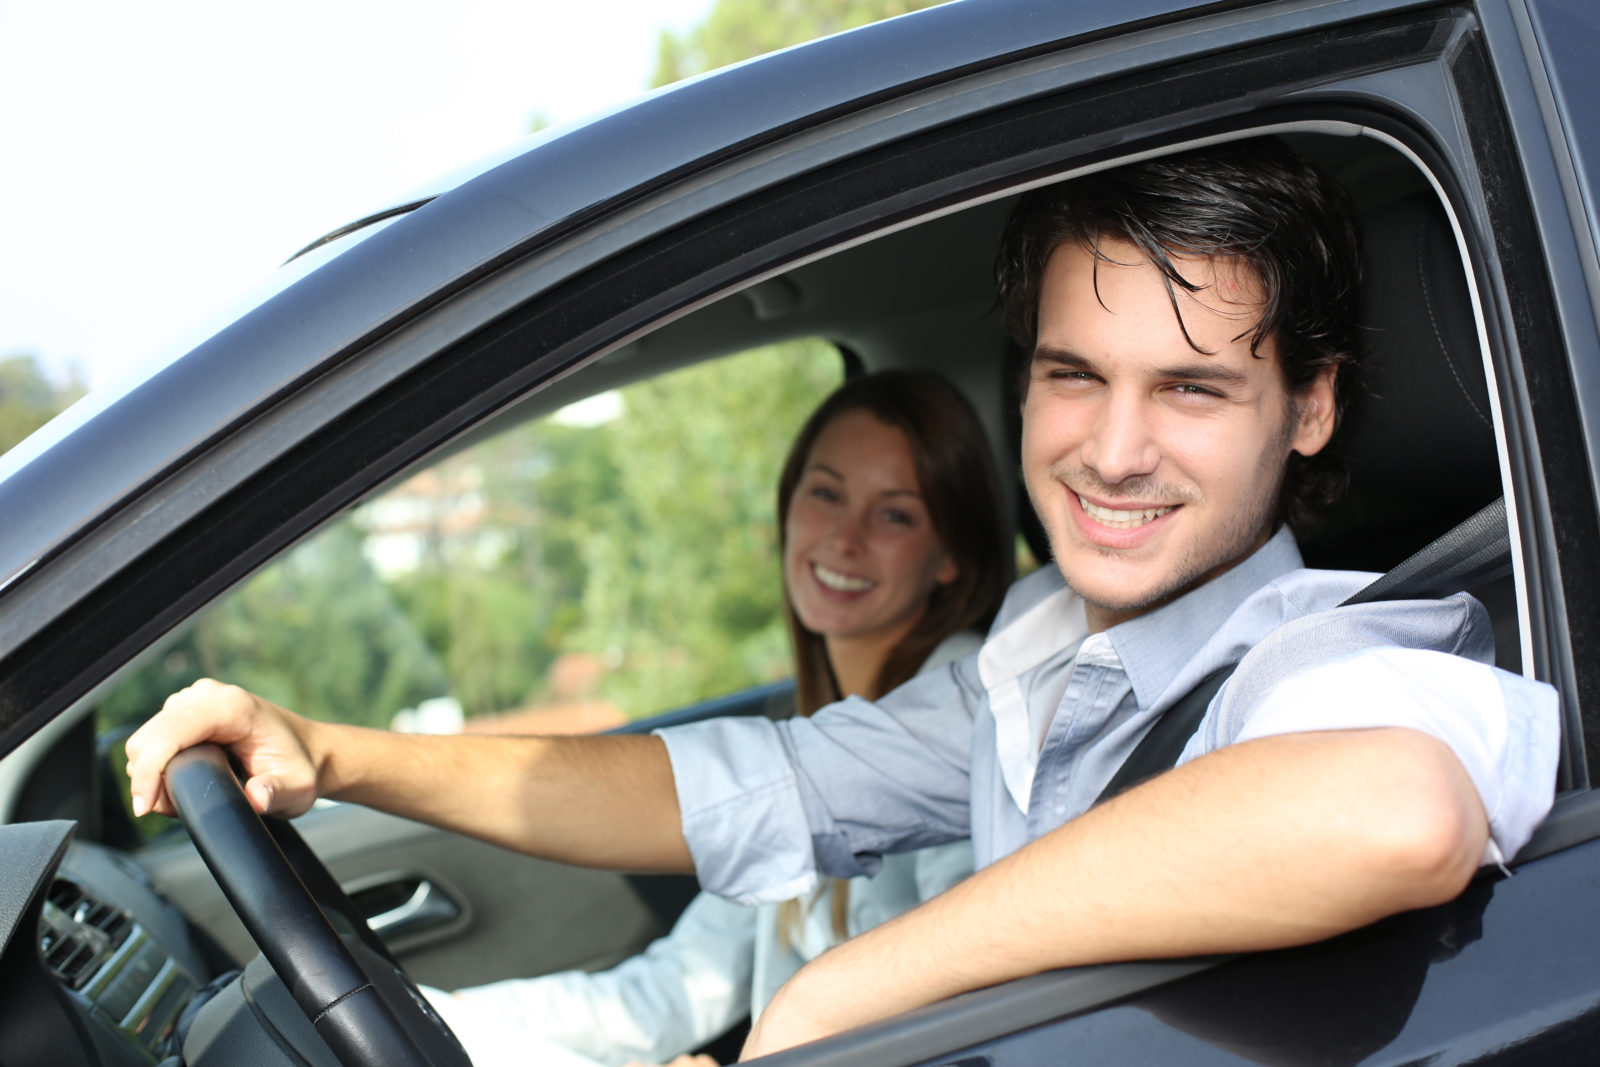 Auto Insurance in Abington MA, Braintree, Laconia, Quincy MA, Weymouth